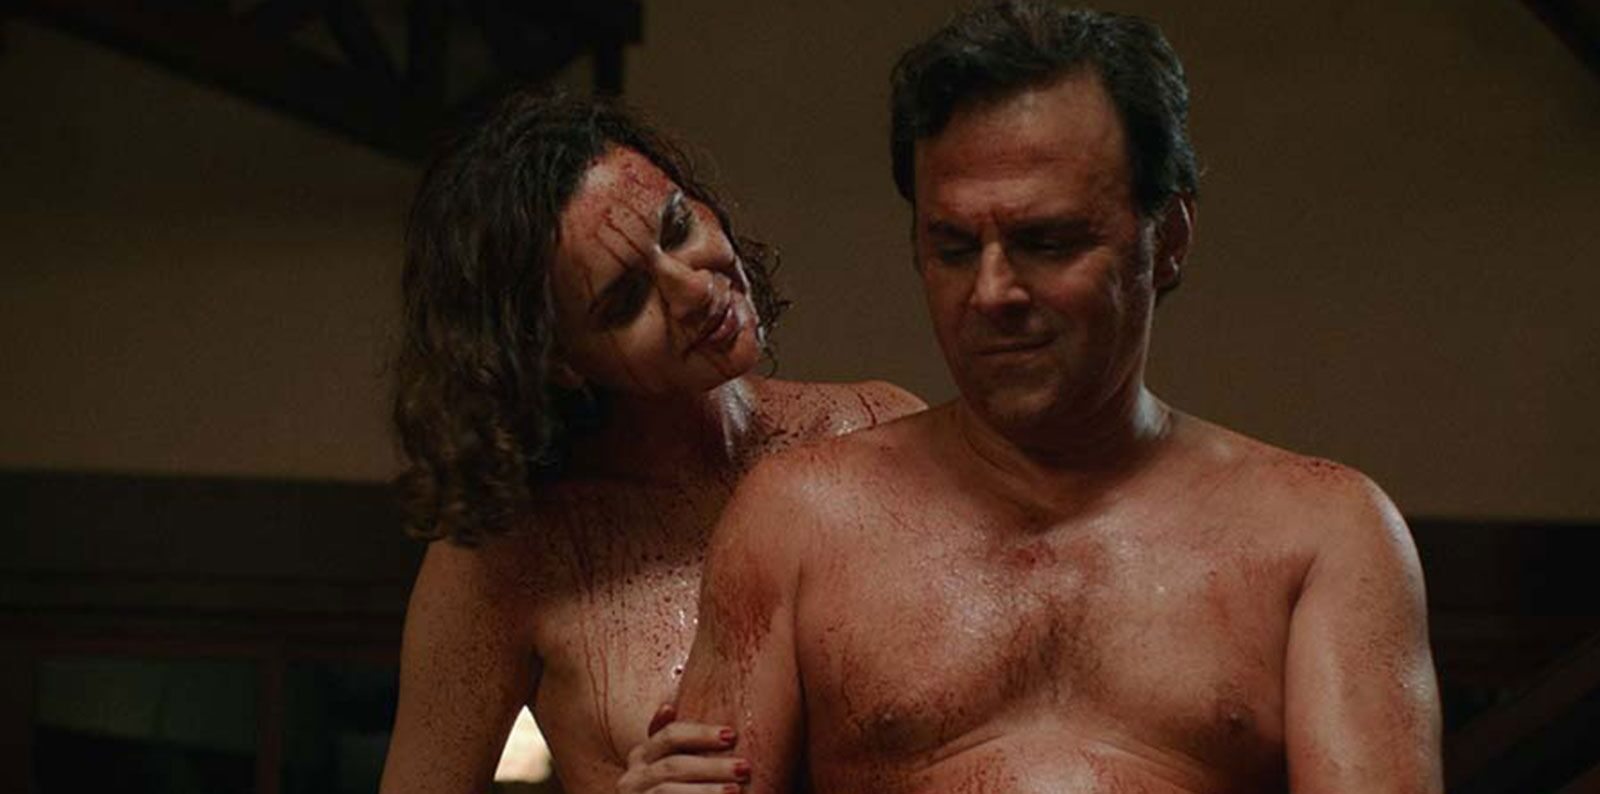 The Cannibal Club Review: A taste of a better movie